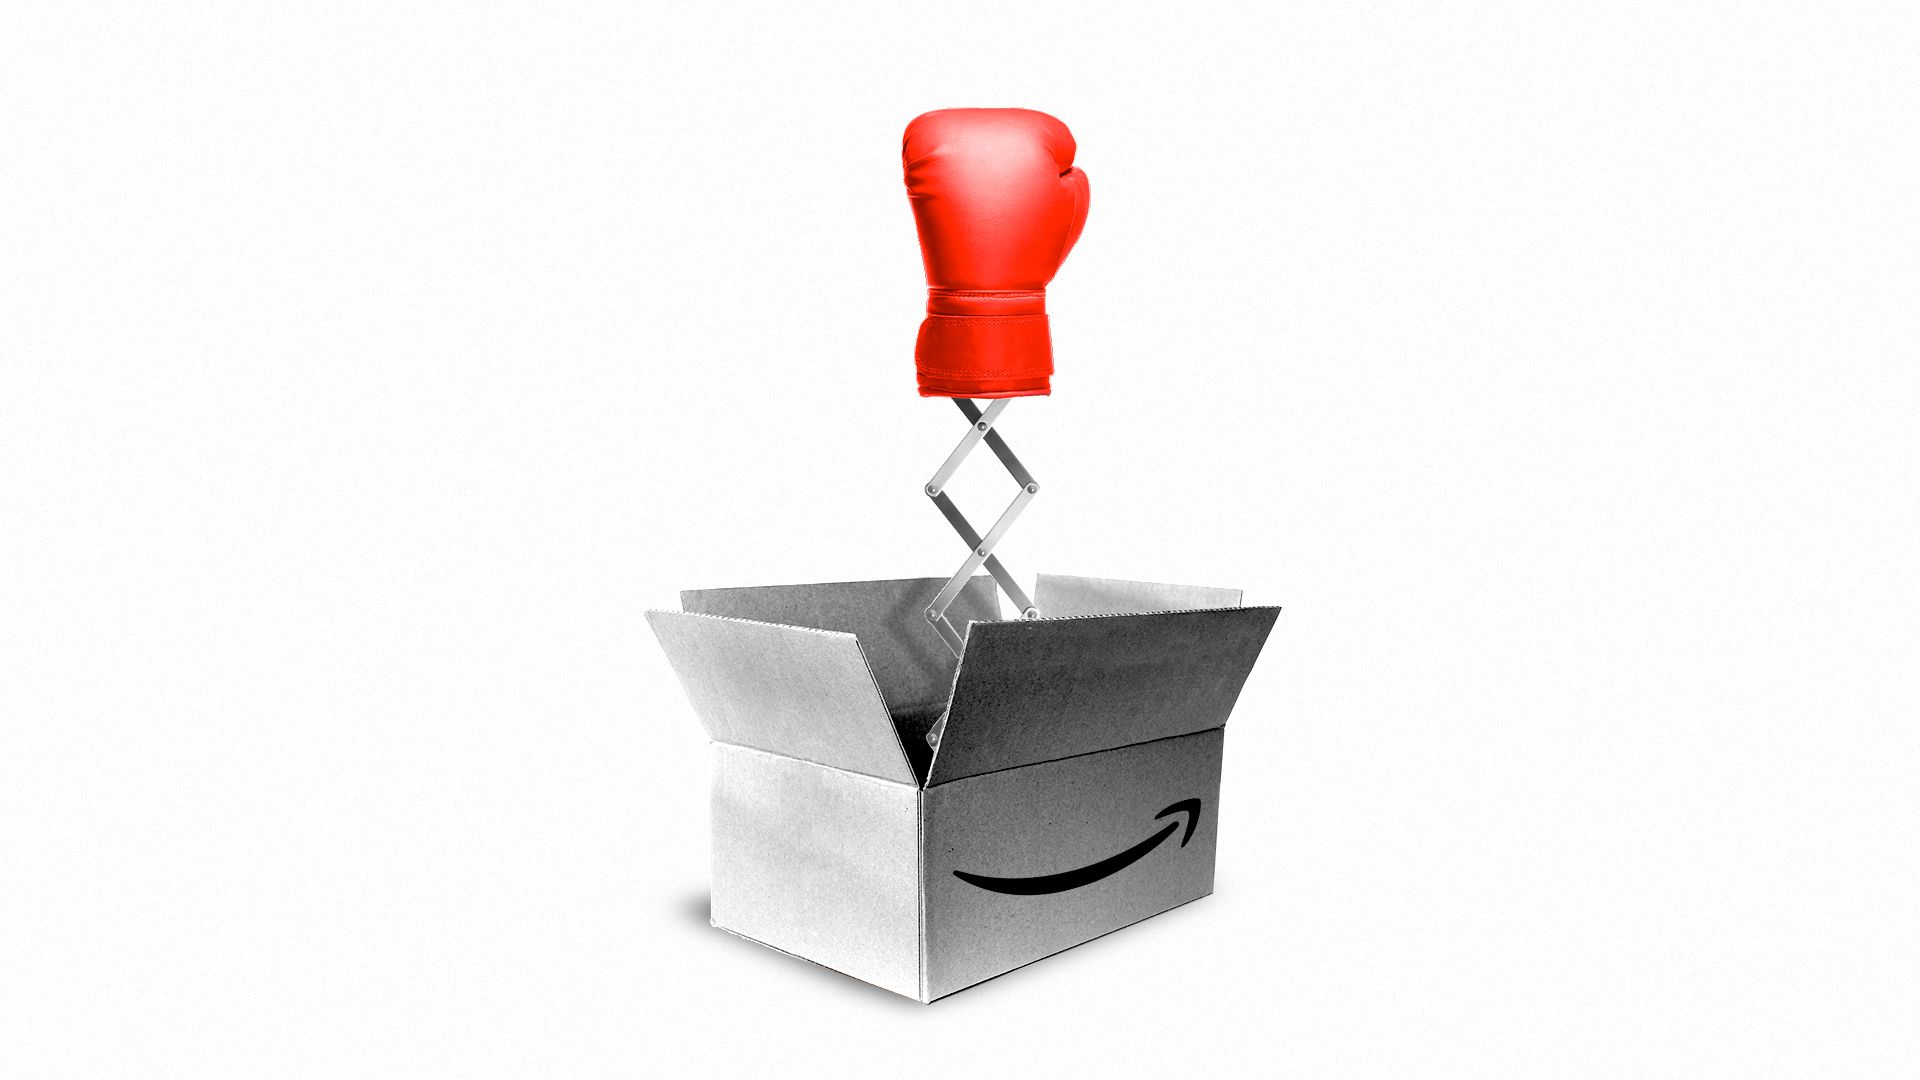 Illustration of an Amazon box with a boxing glove bursting out on a spring.